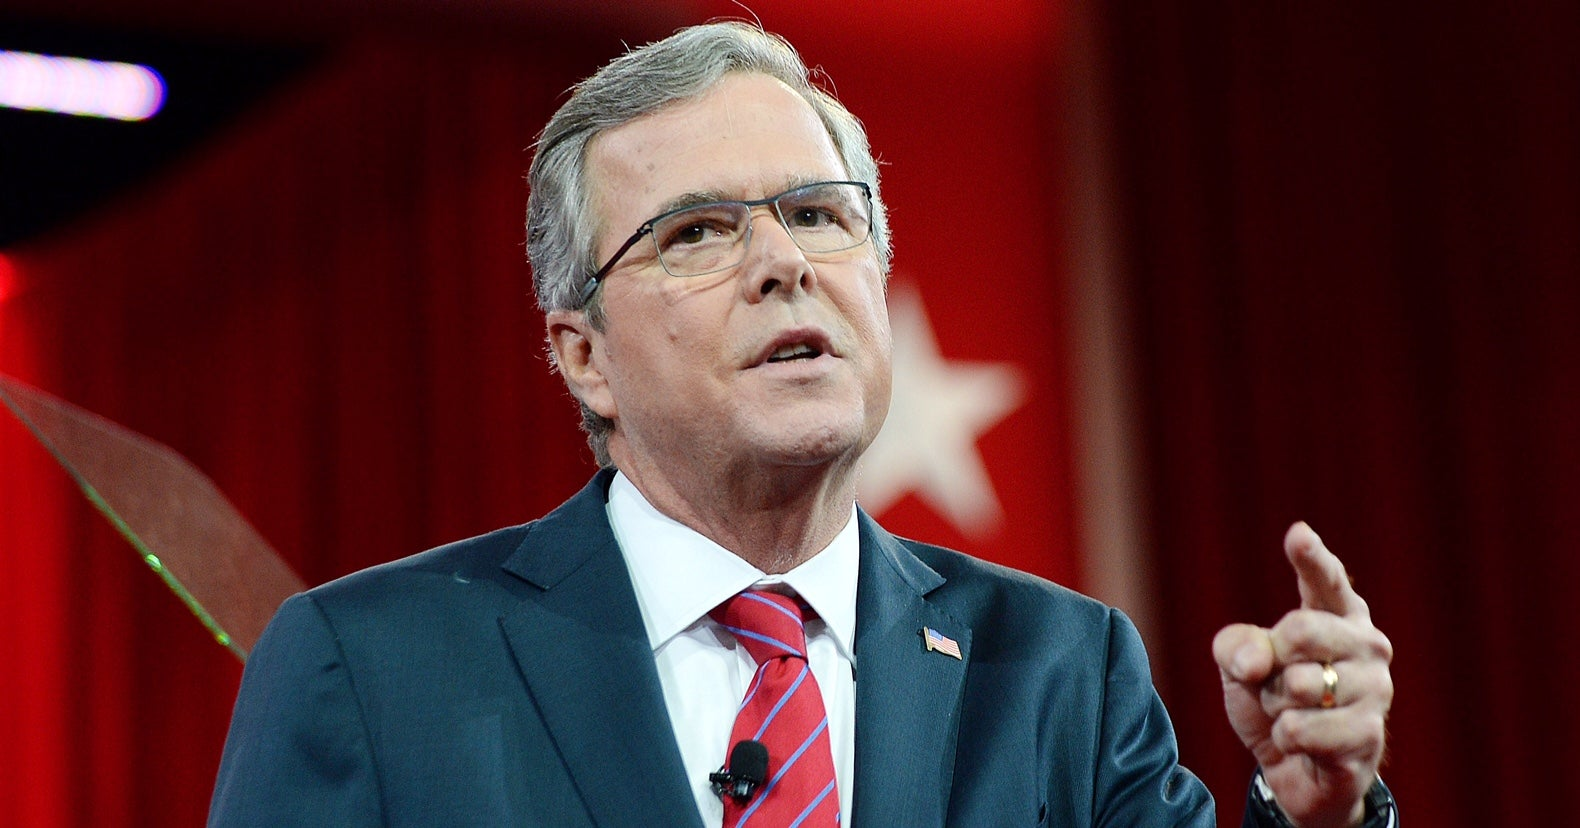 Former Florida Gov. Jeb Bush addresses the Conservative Political Action Conference. (Photo: Olivier Douliery)